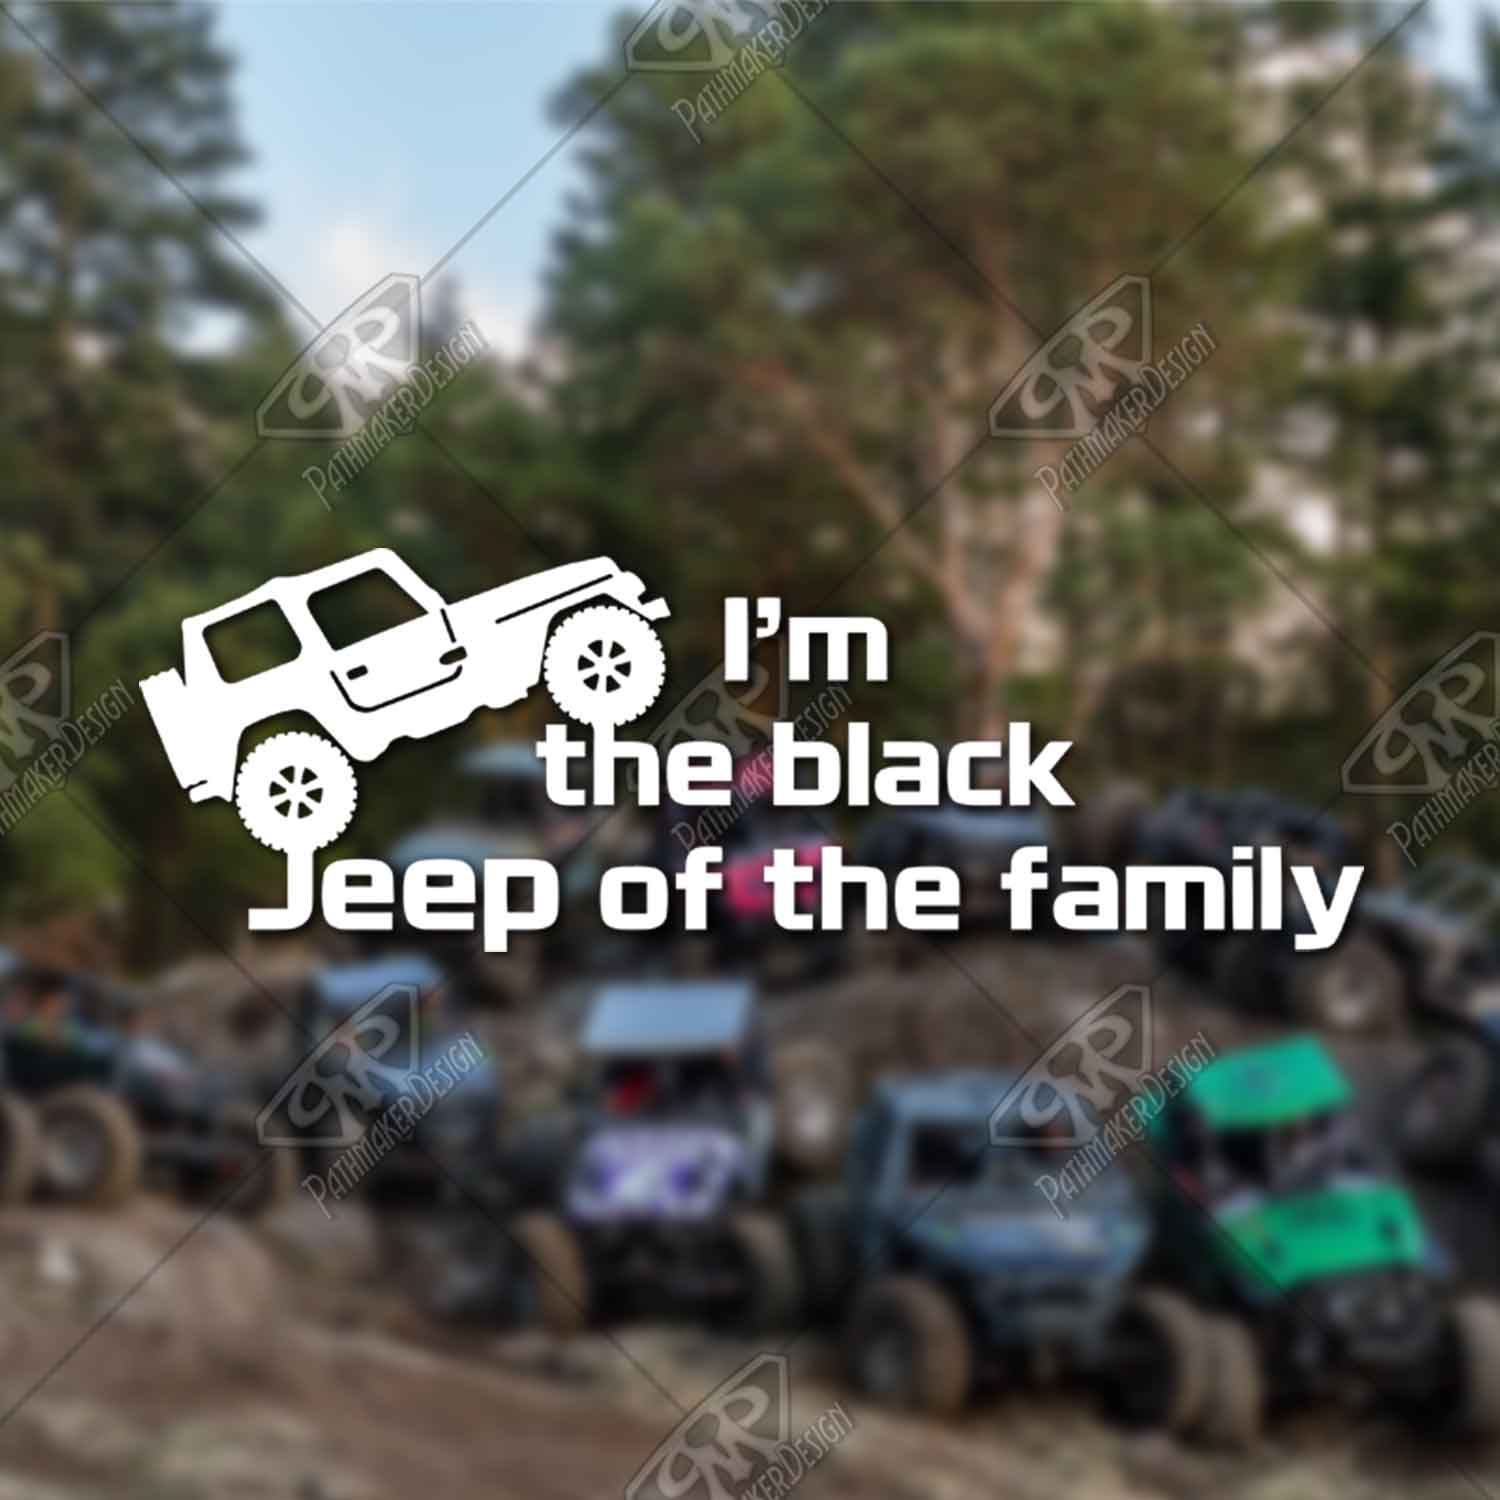 Black Jeep Of The Family Vinyl Decal Pathmaker Productions